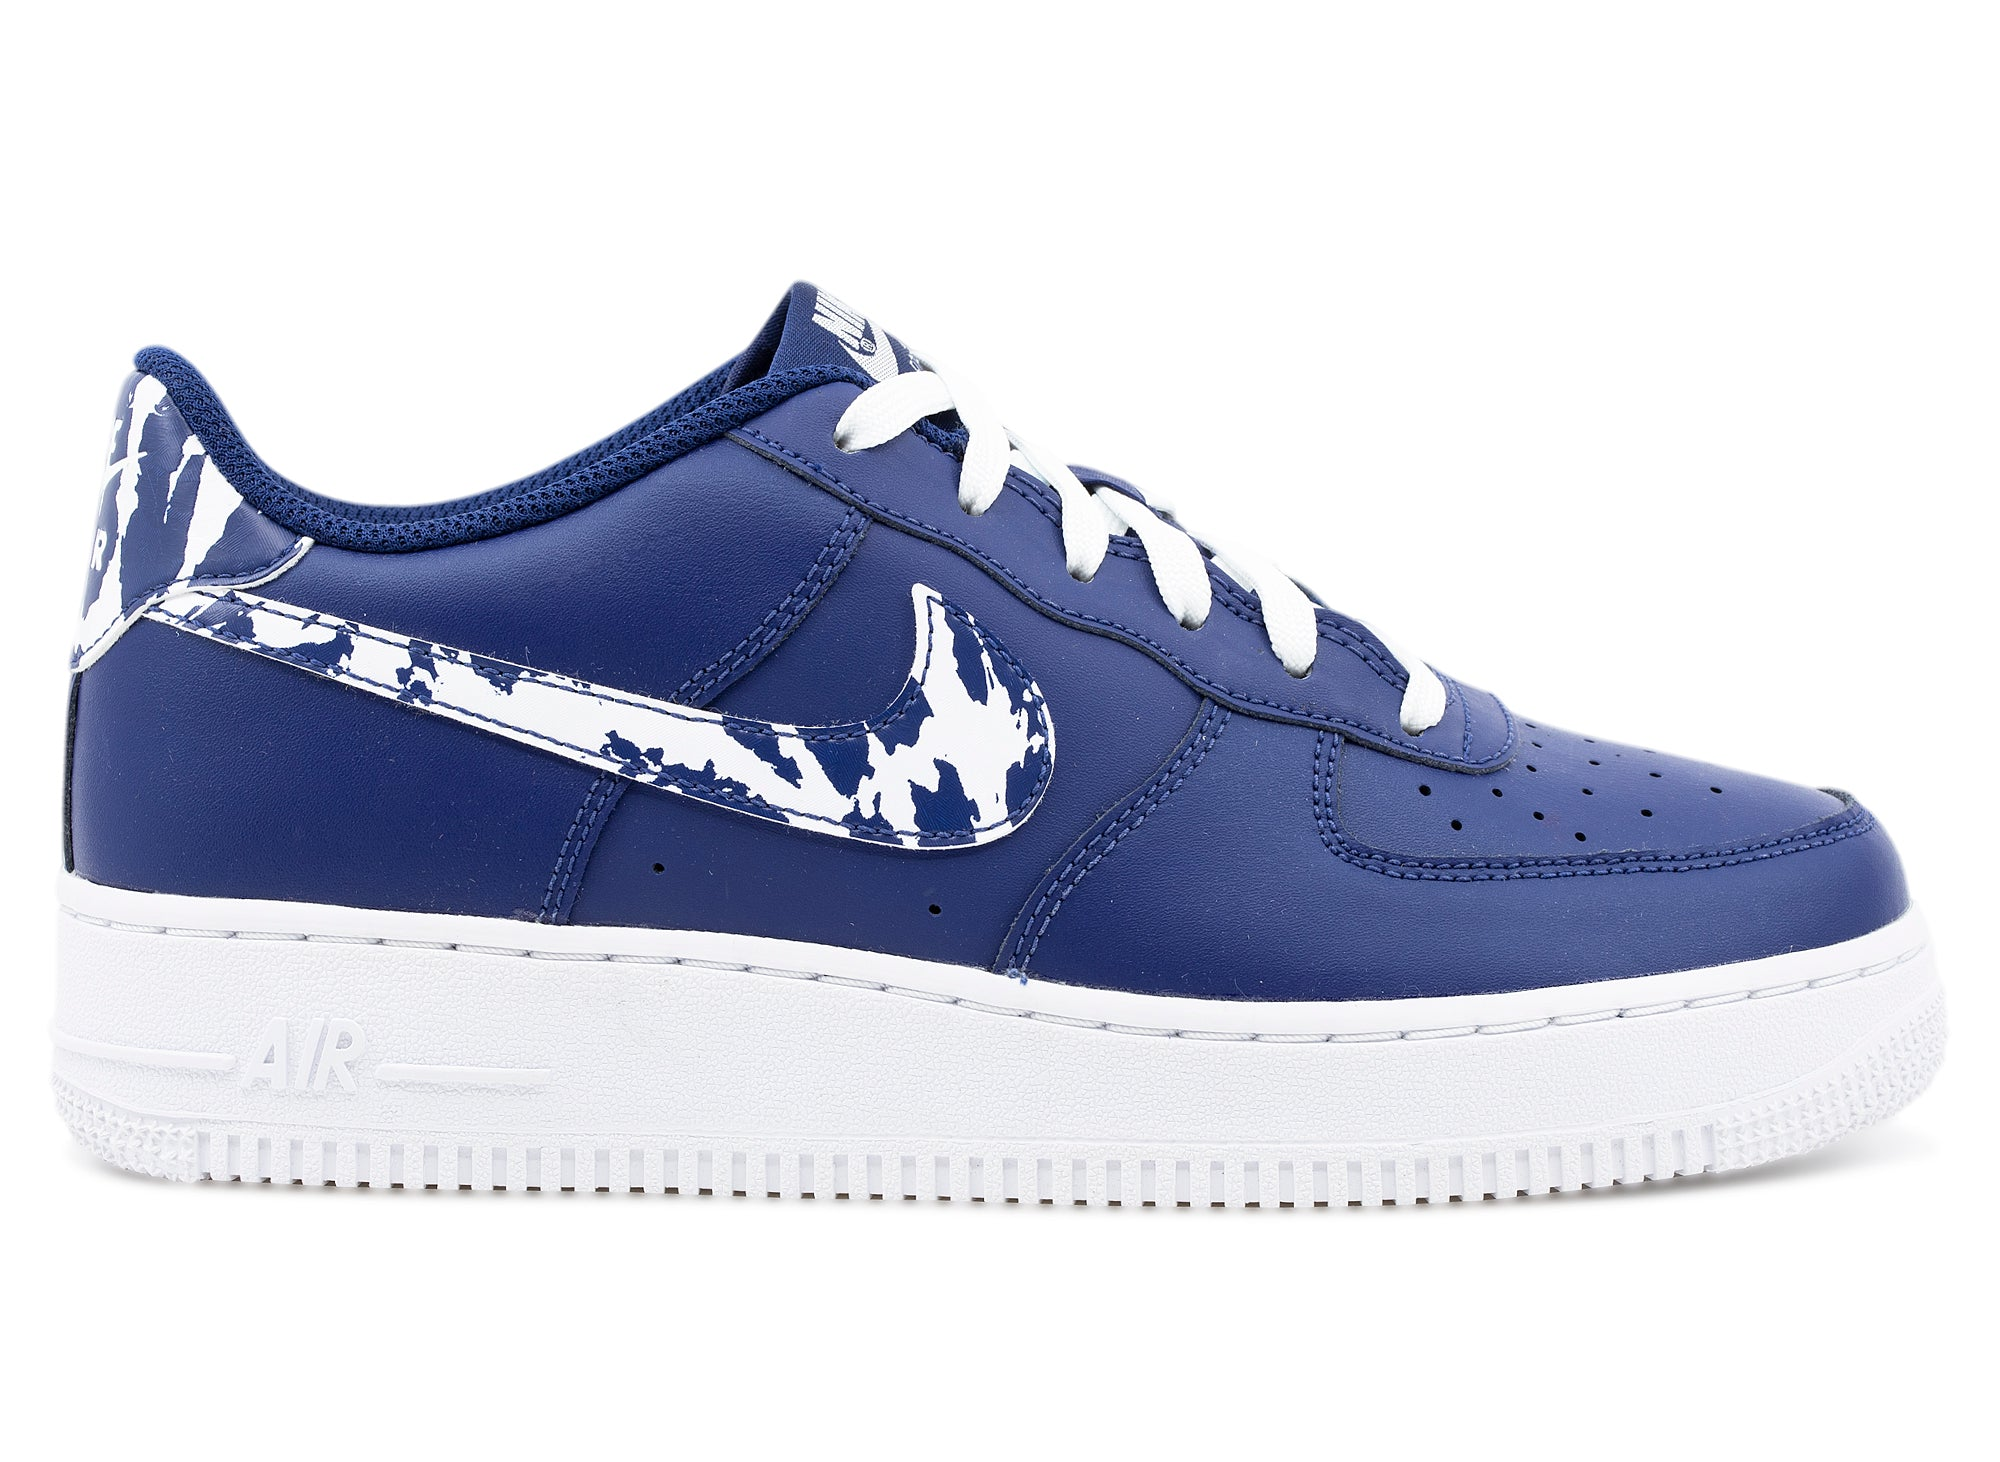 GS Nike Air Force 1 LV8